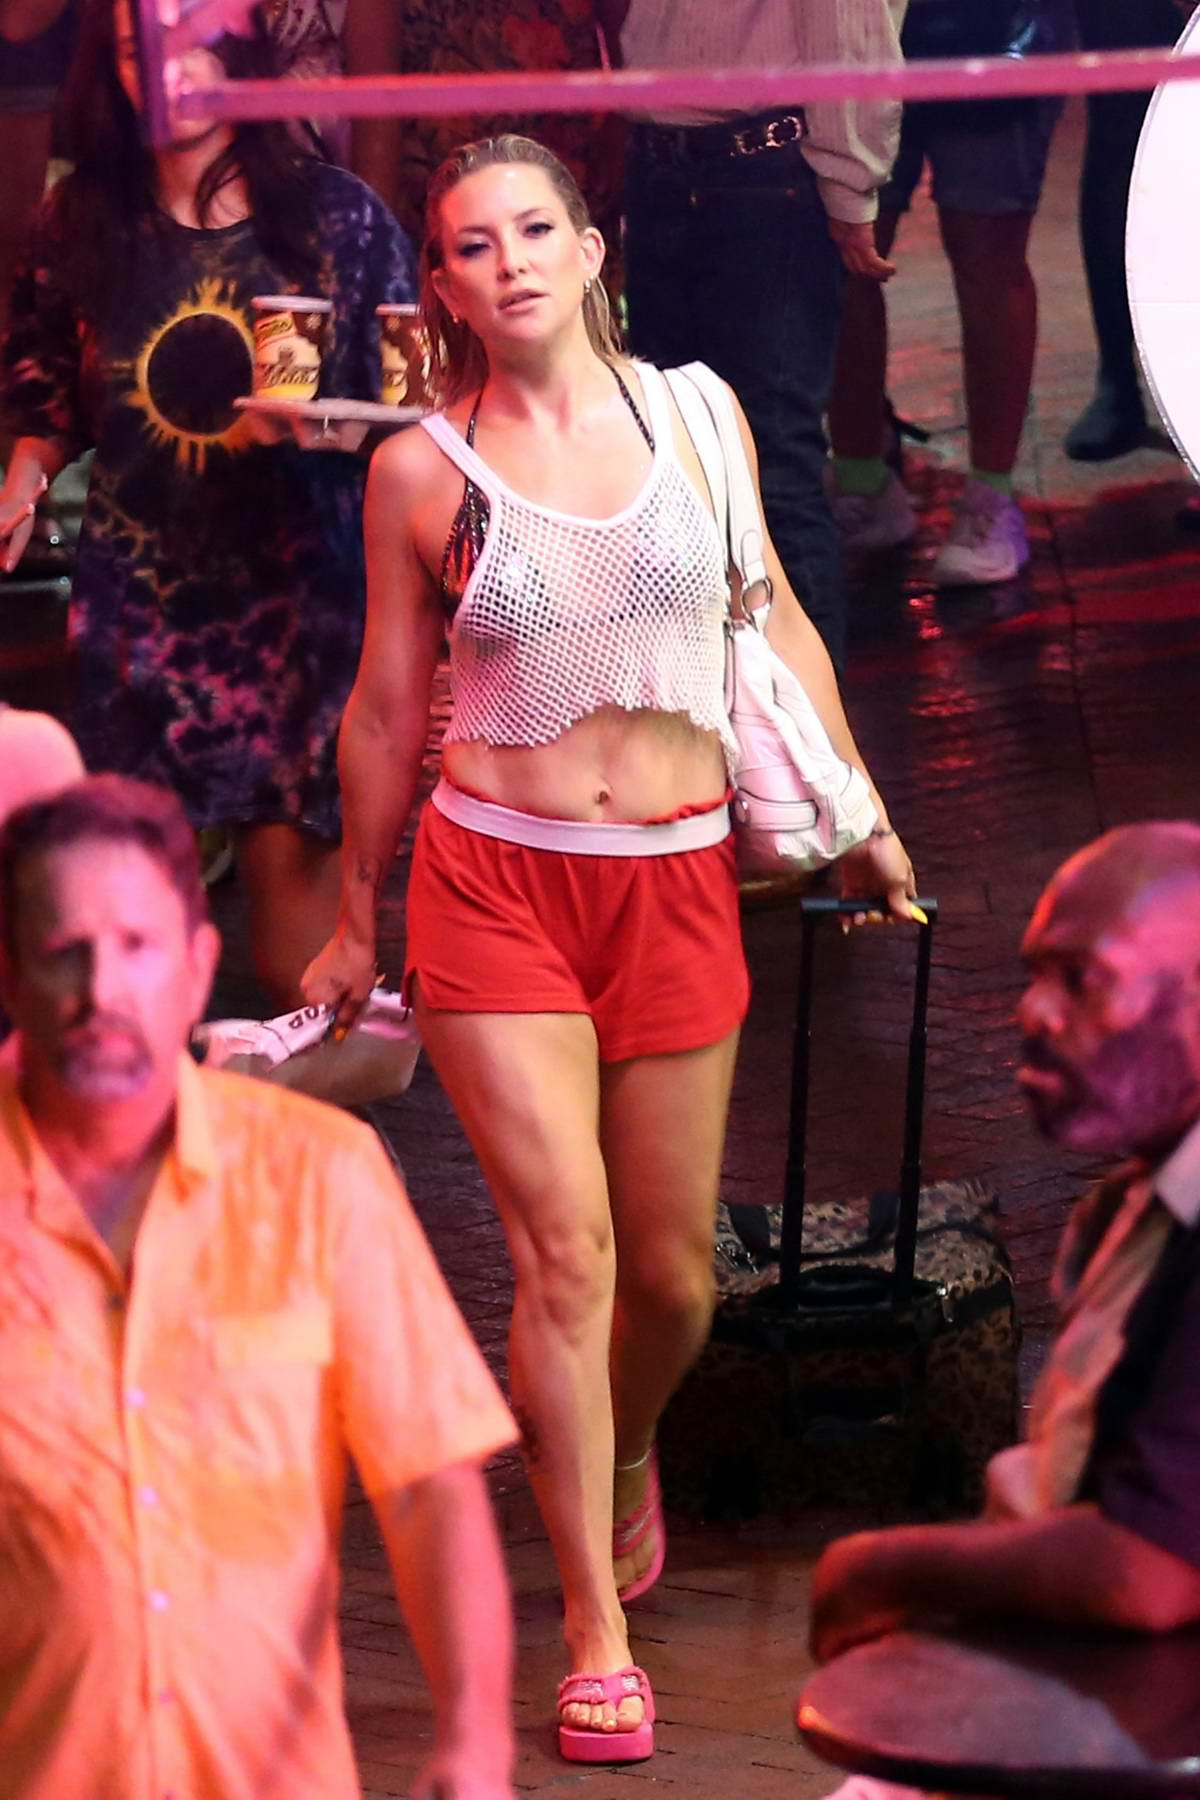 Kate Hudson dressed in tank top and shorts while filming 'Mona Lisa and the Blood Moon' in New Orleans, Louisiana